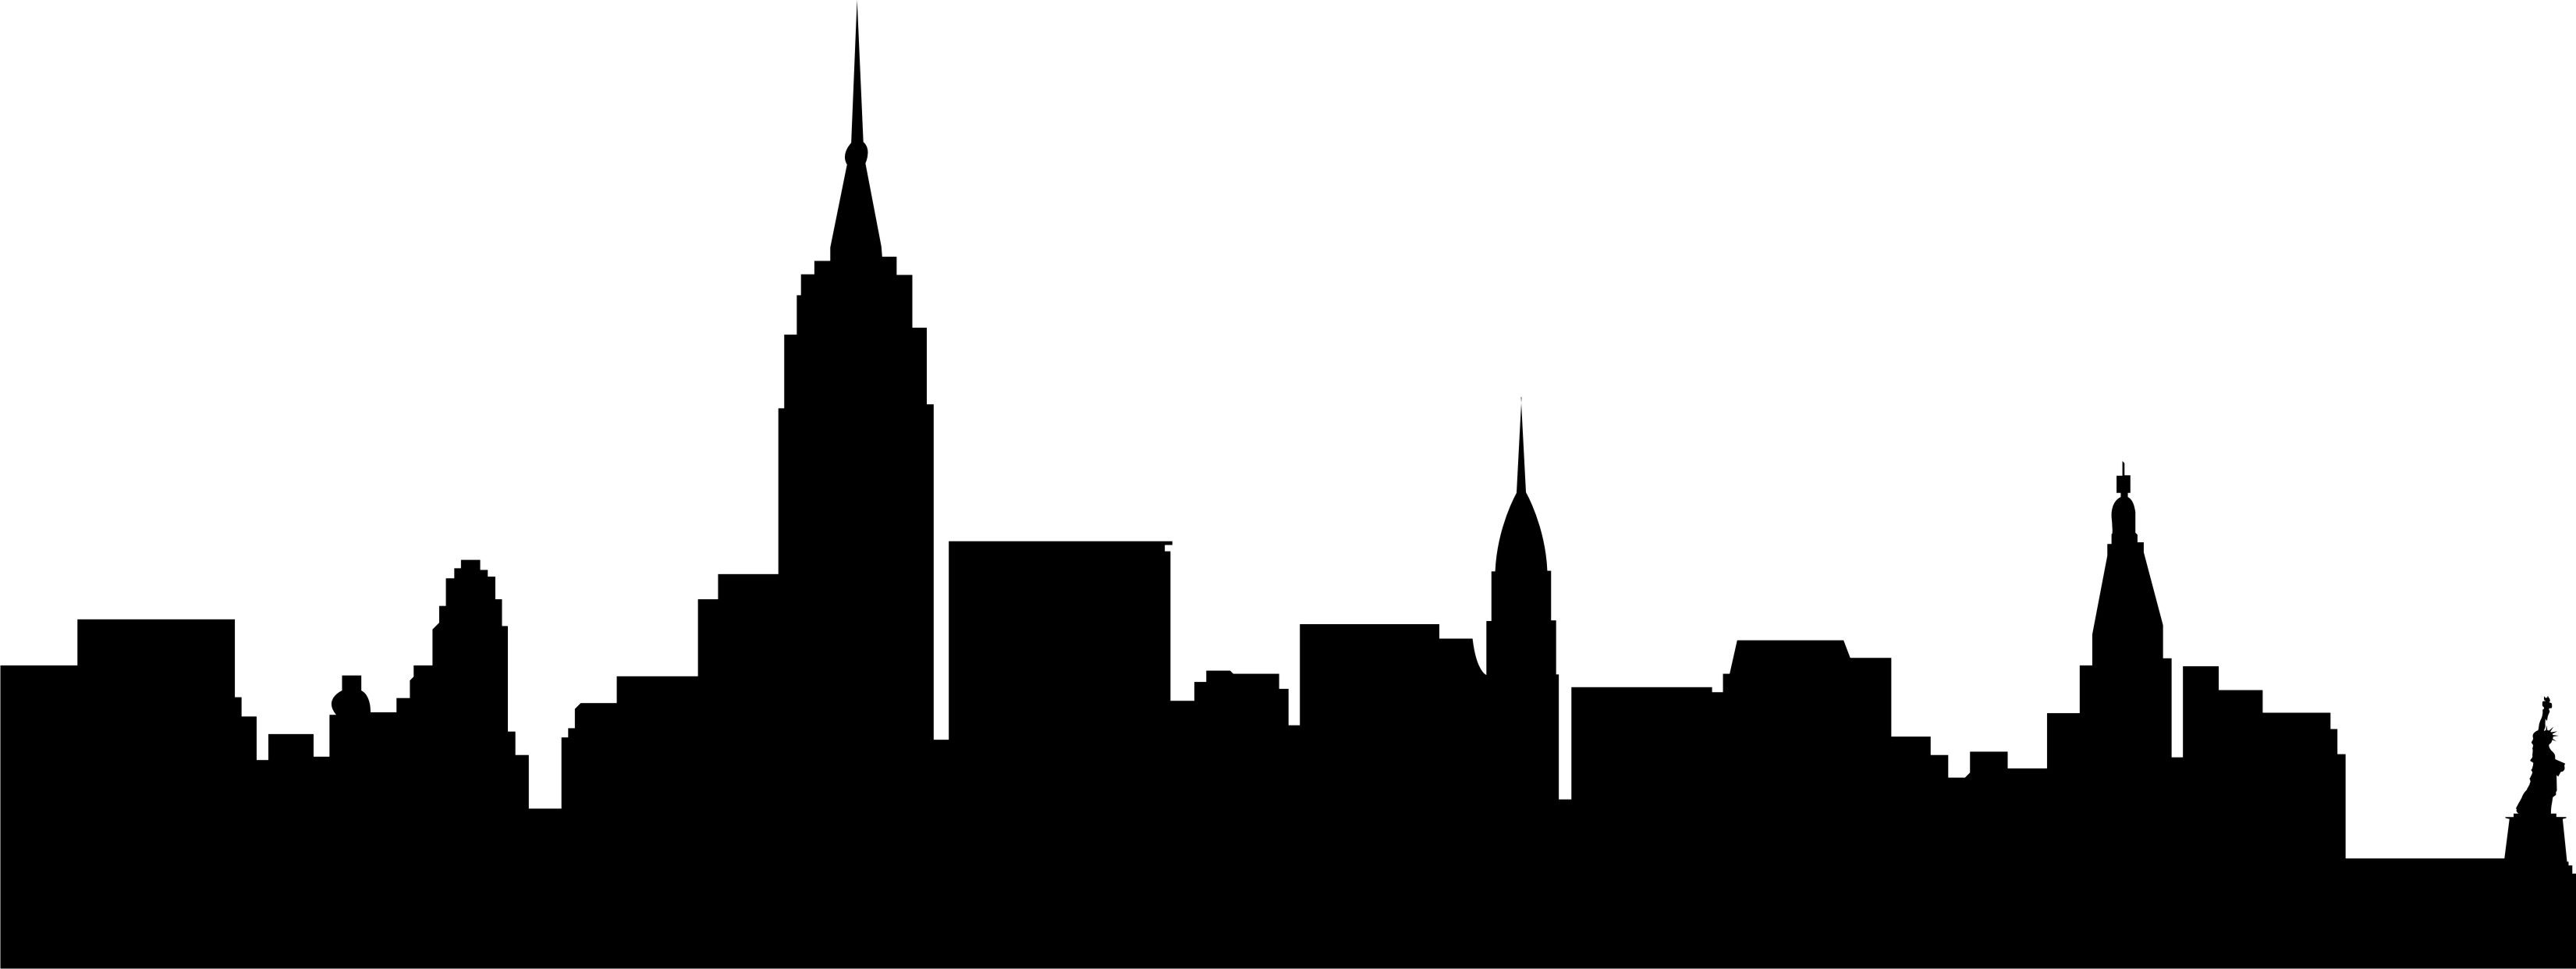 city skyline silhouette clip art at getdrawings com free for rh getdrawings com city landscape buildings clipart